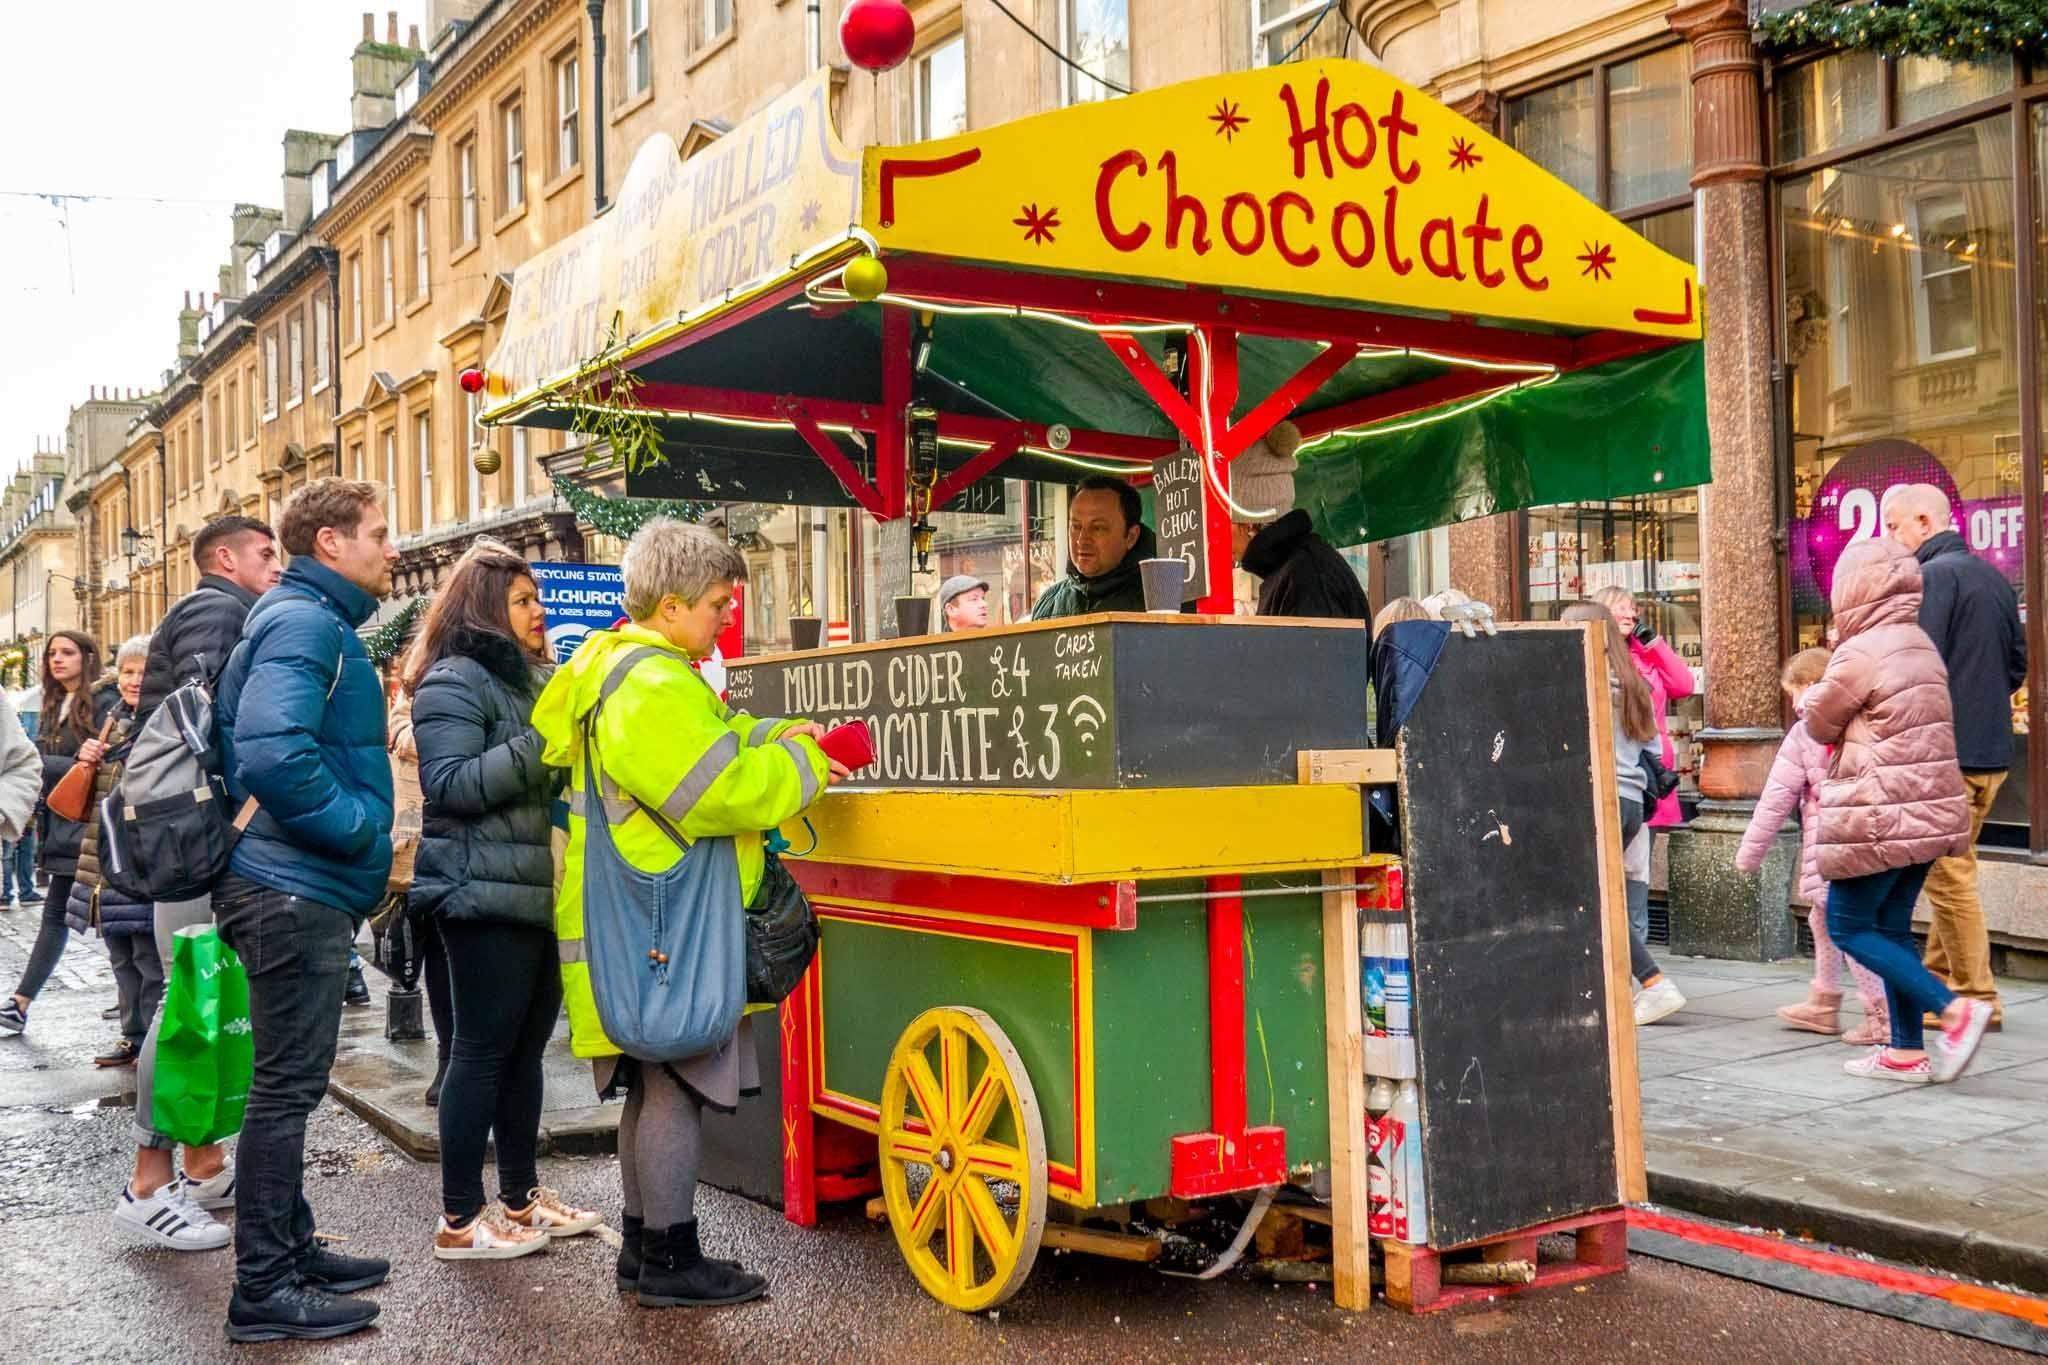 People standing at yellow and green hot chocolate cart in the street